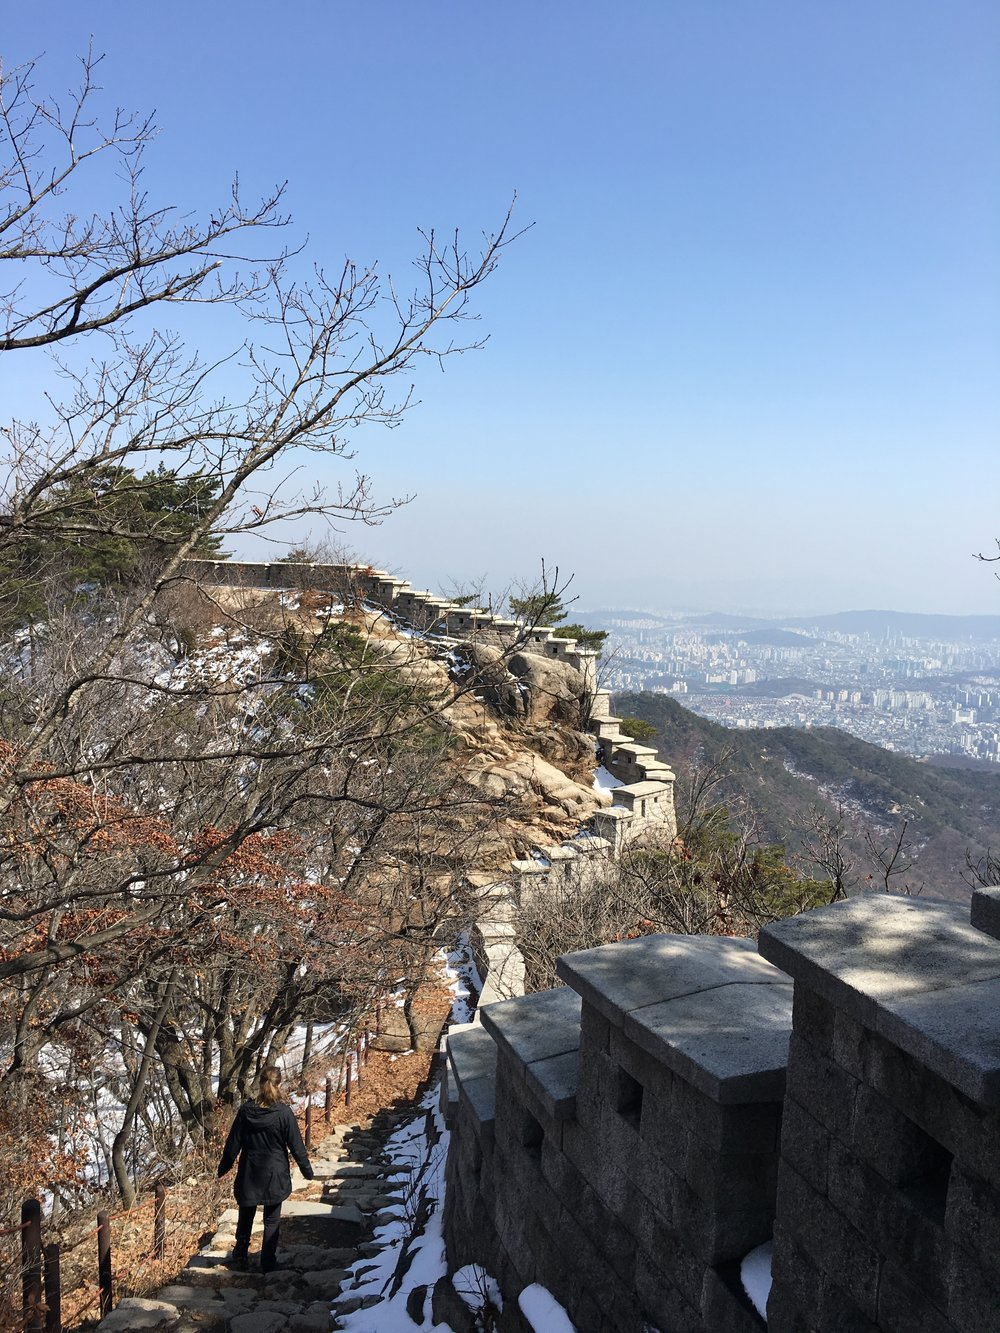 Walking the Fortress wall bukhansan national park seoul korea